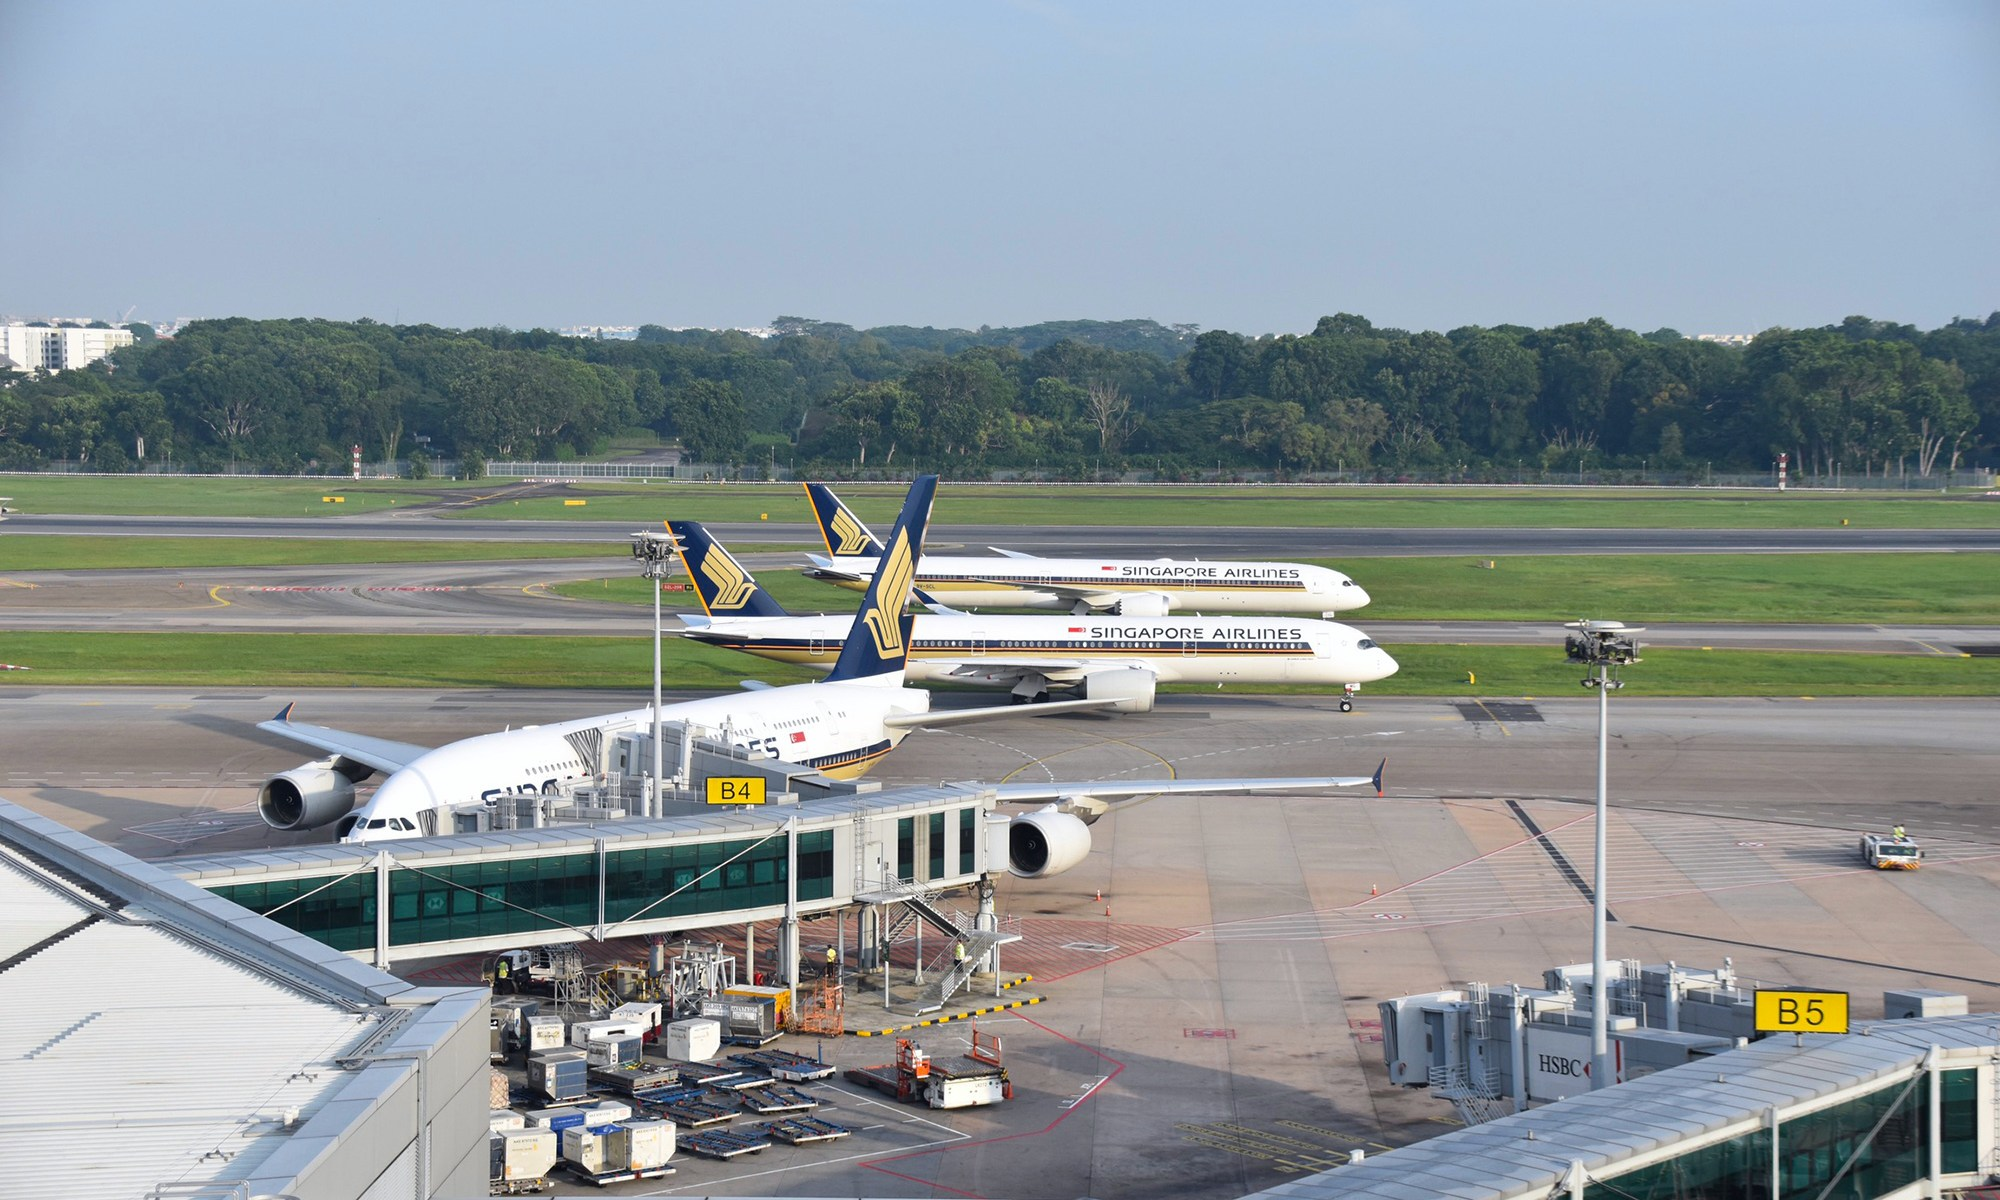 Singapore Airlines Fleet: July 2019 – Mainly Miles